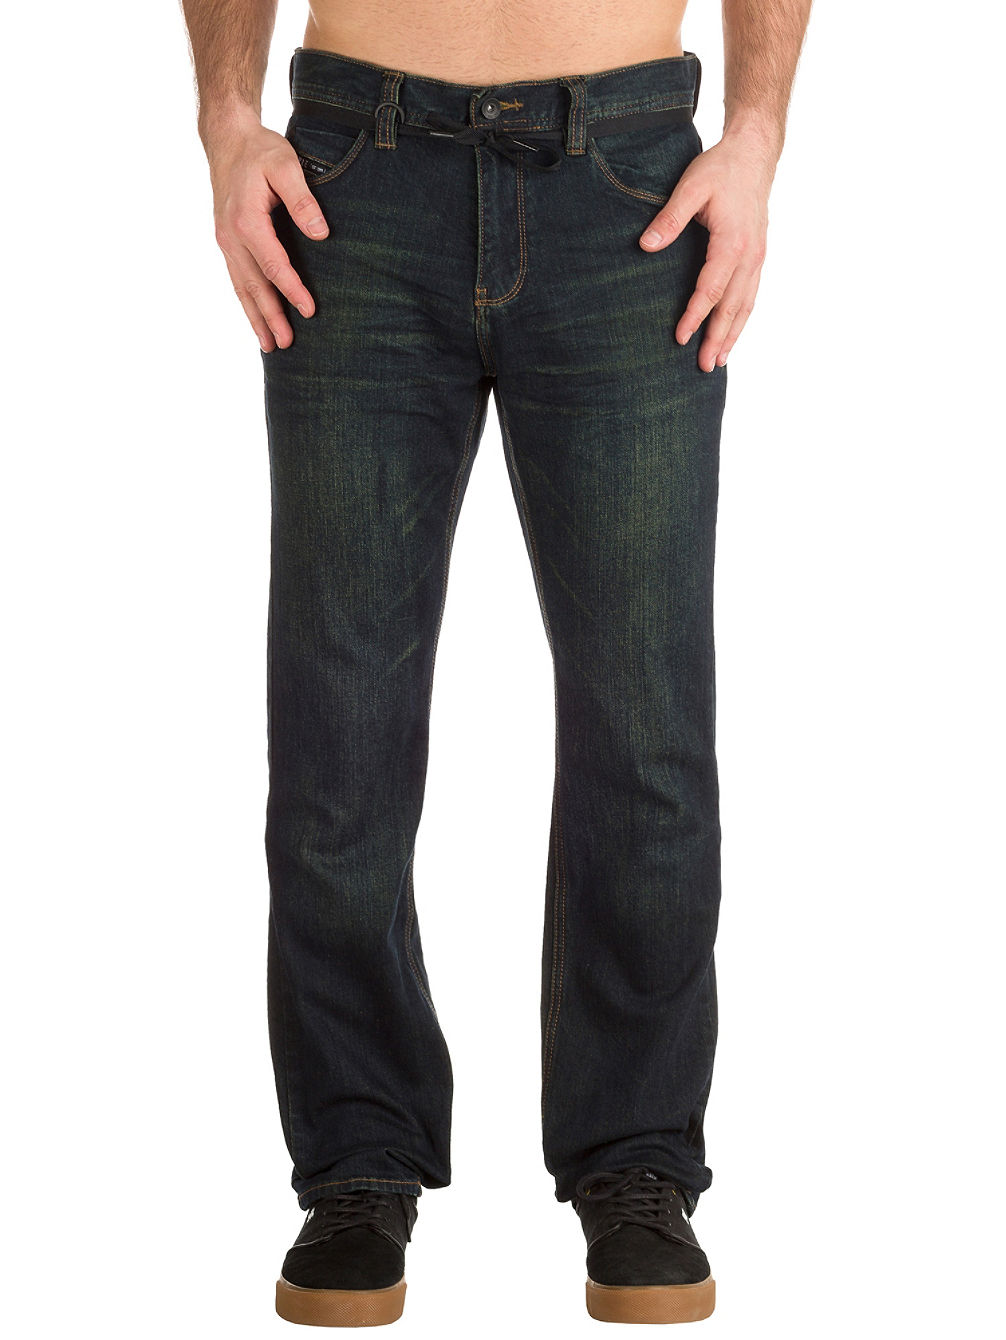 Sledgehammer Regular Fit Jeans